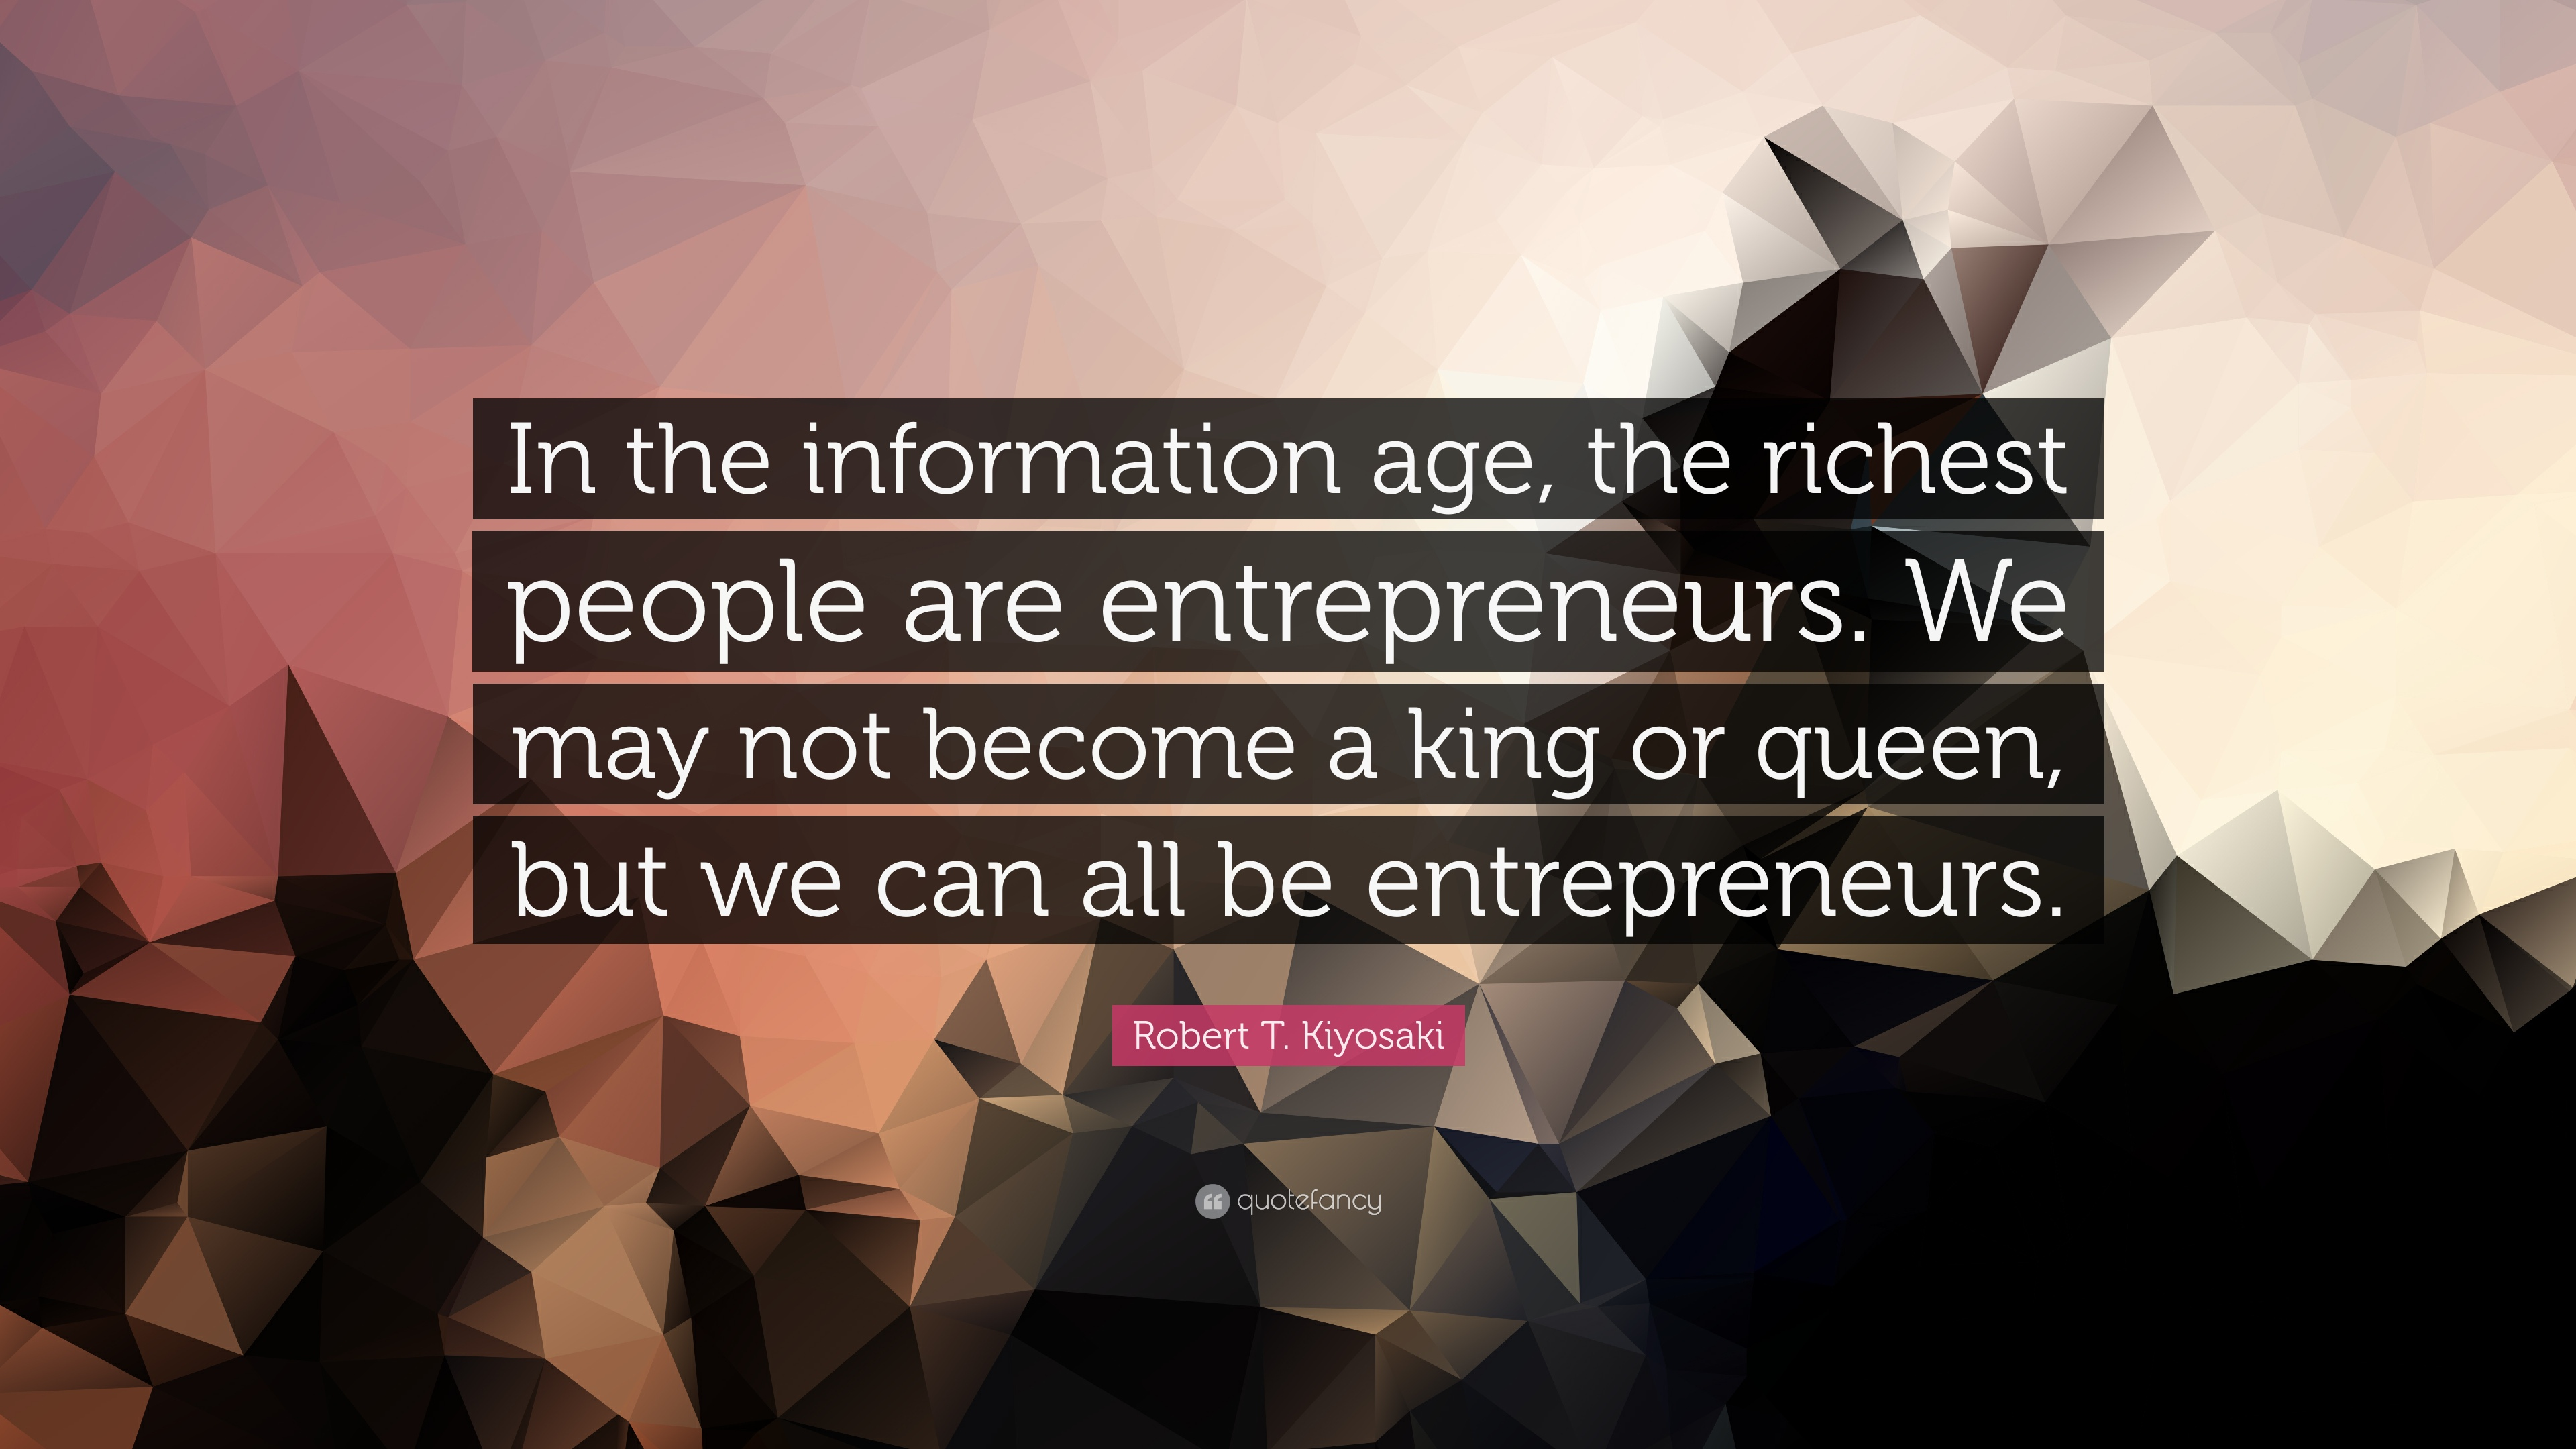 robert t kiyosaki quote in the information age the richest robert t kiyosaki quote in the information age the richest people are